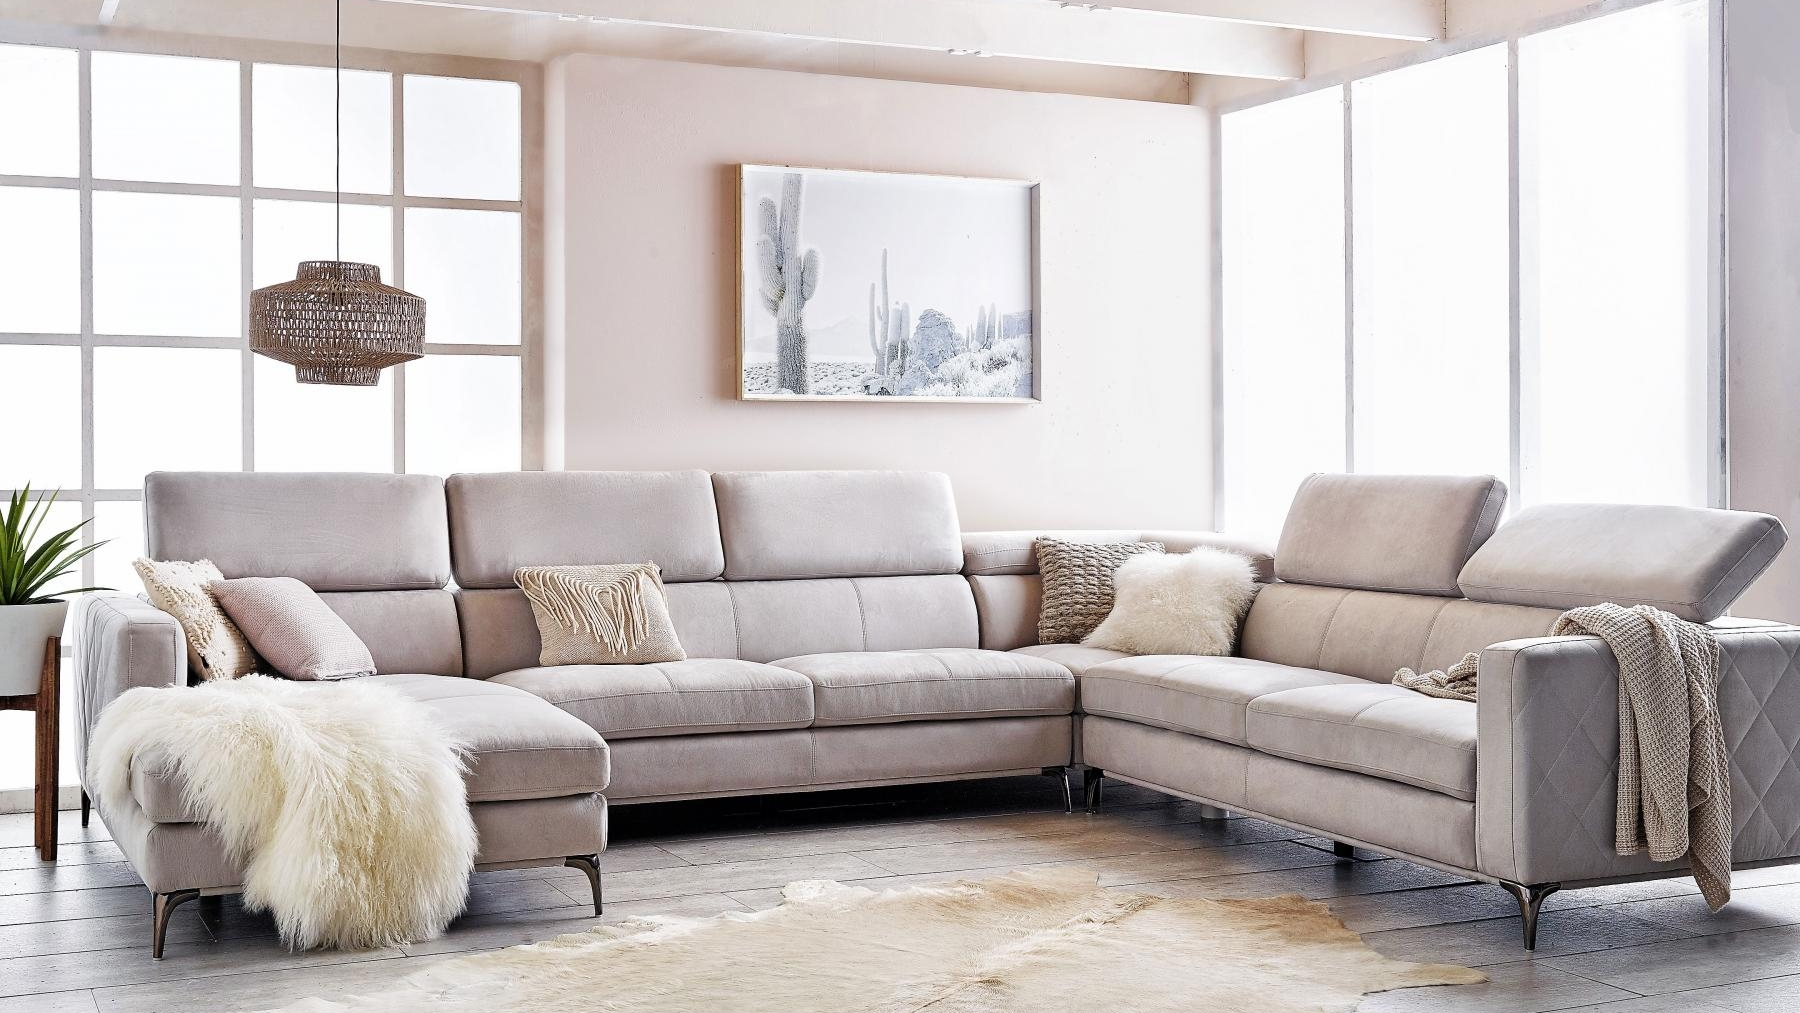 Buy houston 6 seater fabric modular sofa with chaise harvey norman au